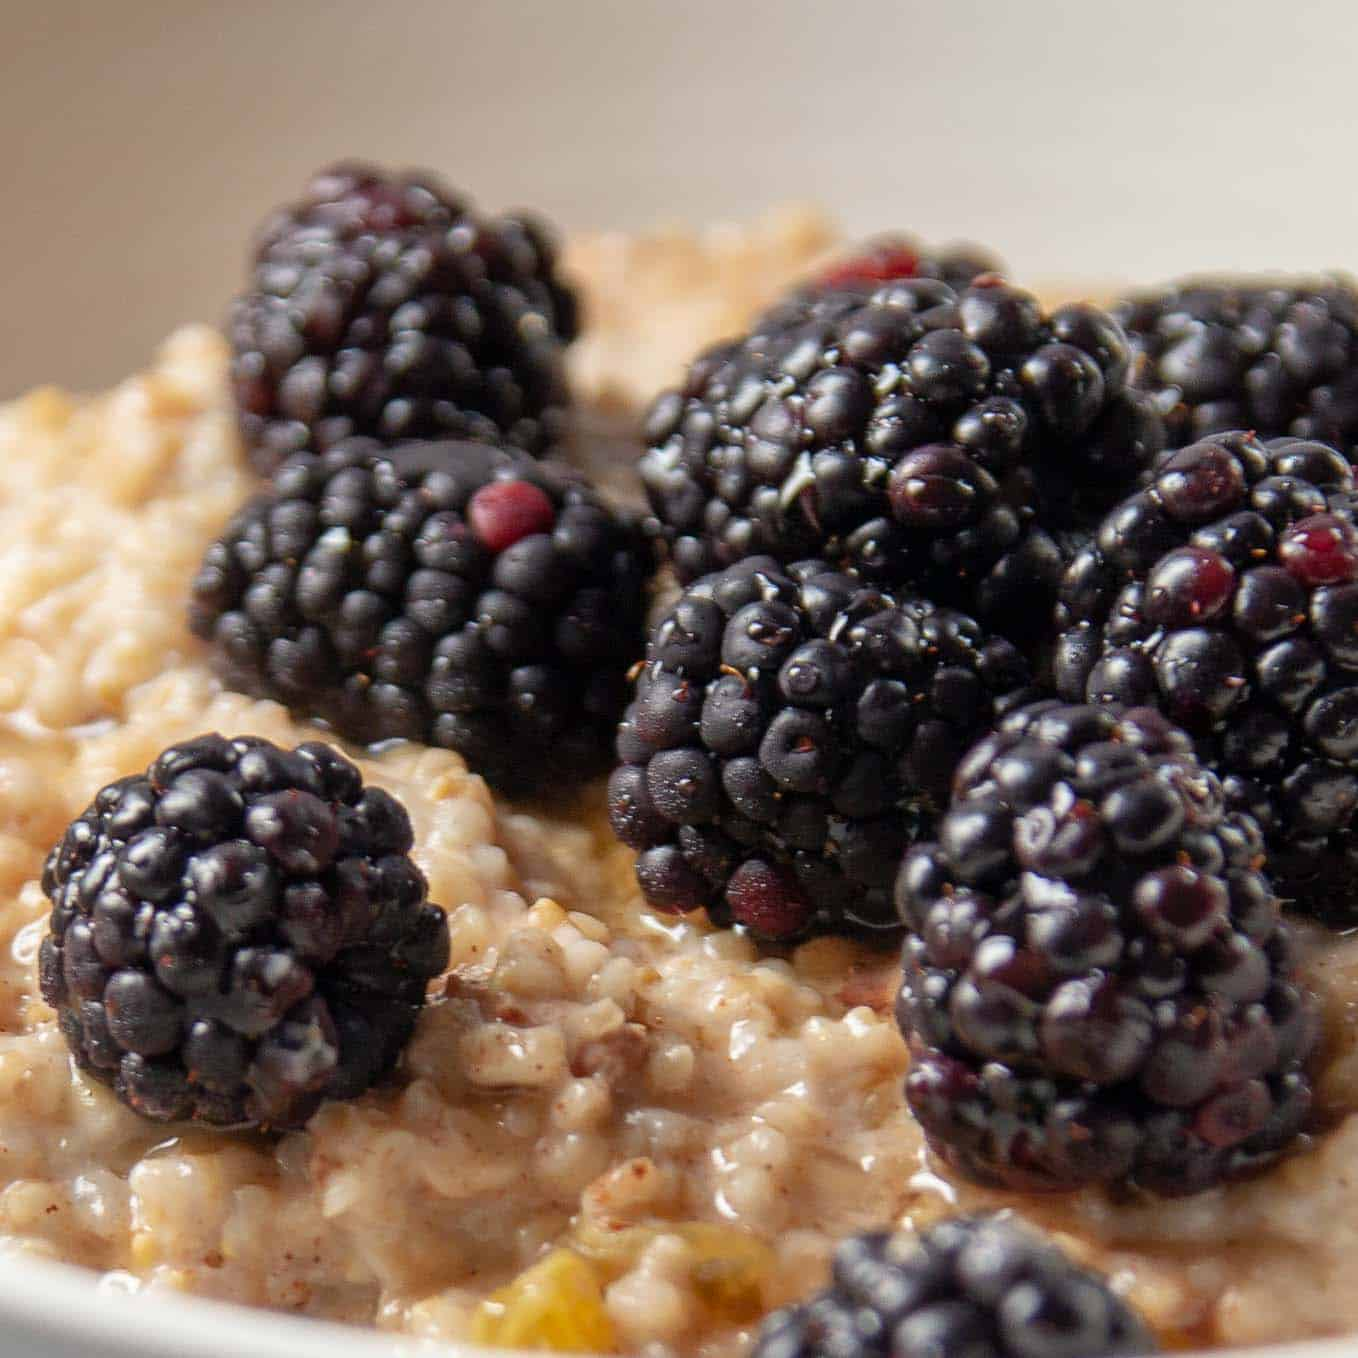 A bowl of berry oatmeal with blackberries, crushed pecans, and maple syrup.